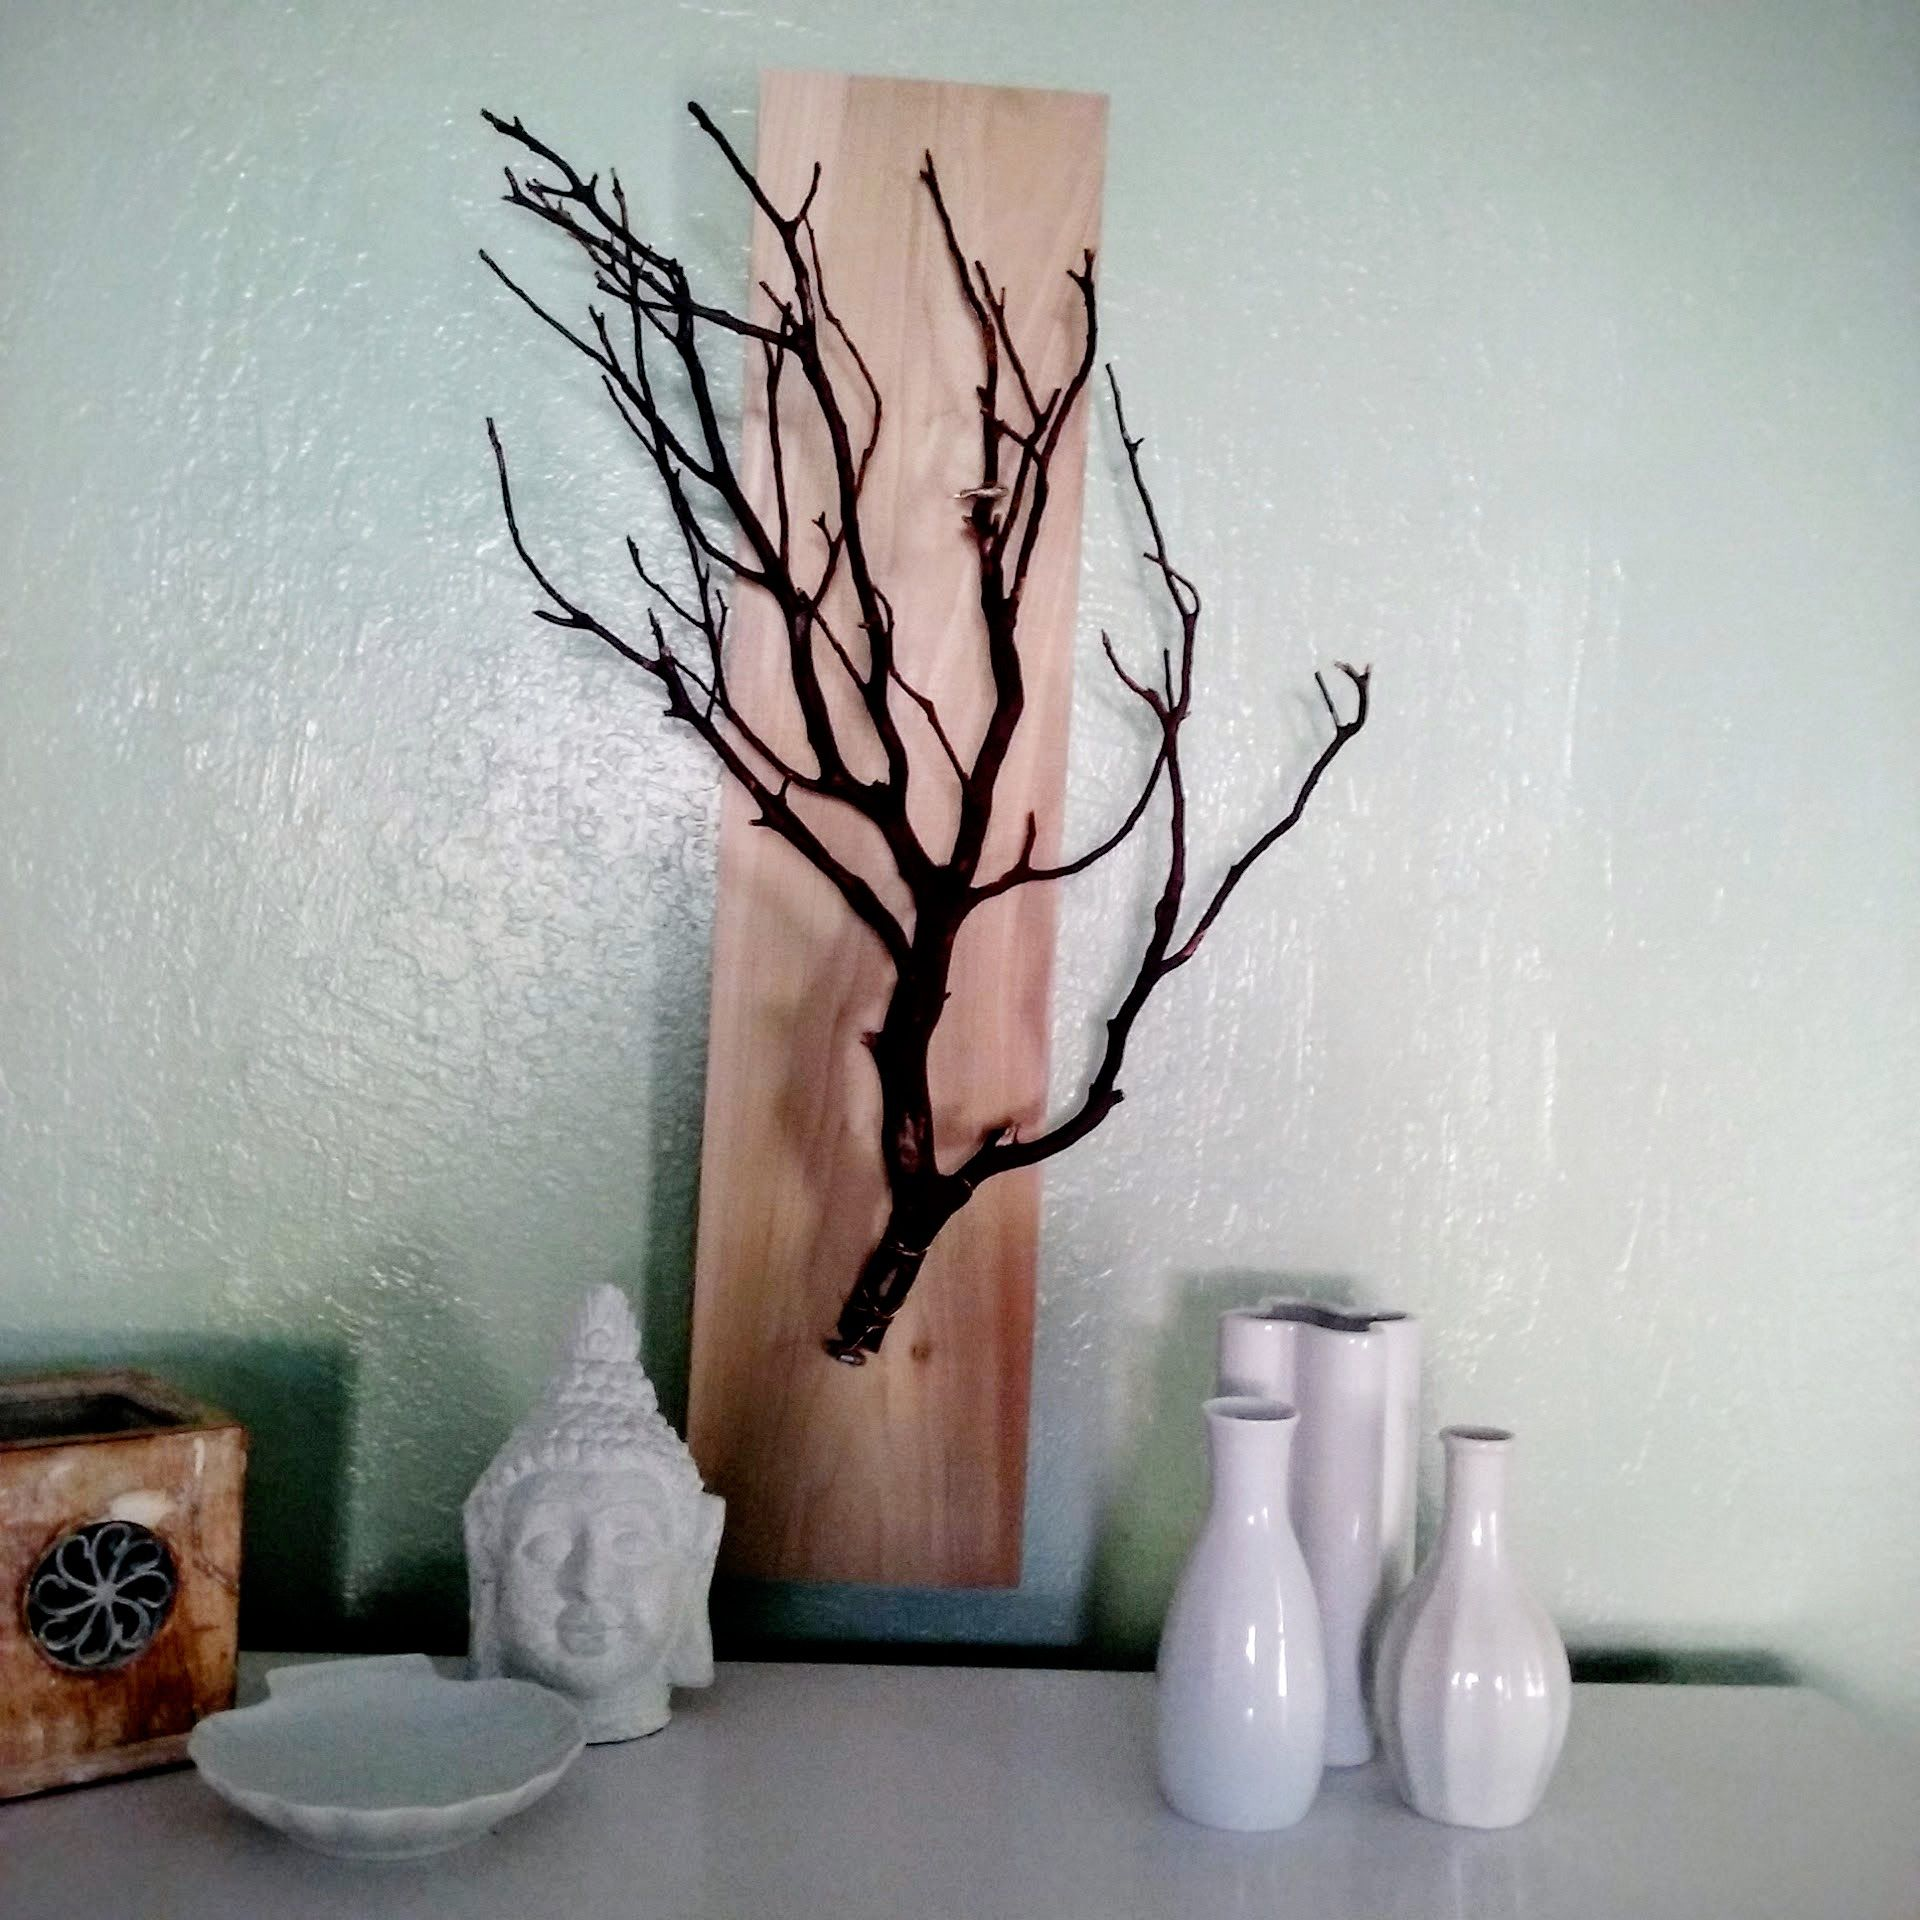 Manzanita branch products, as wall decor or jewelry ...